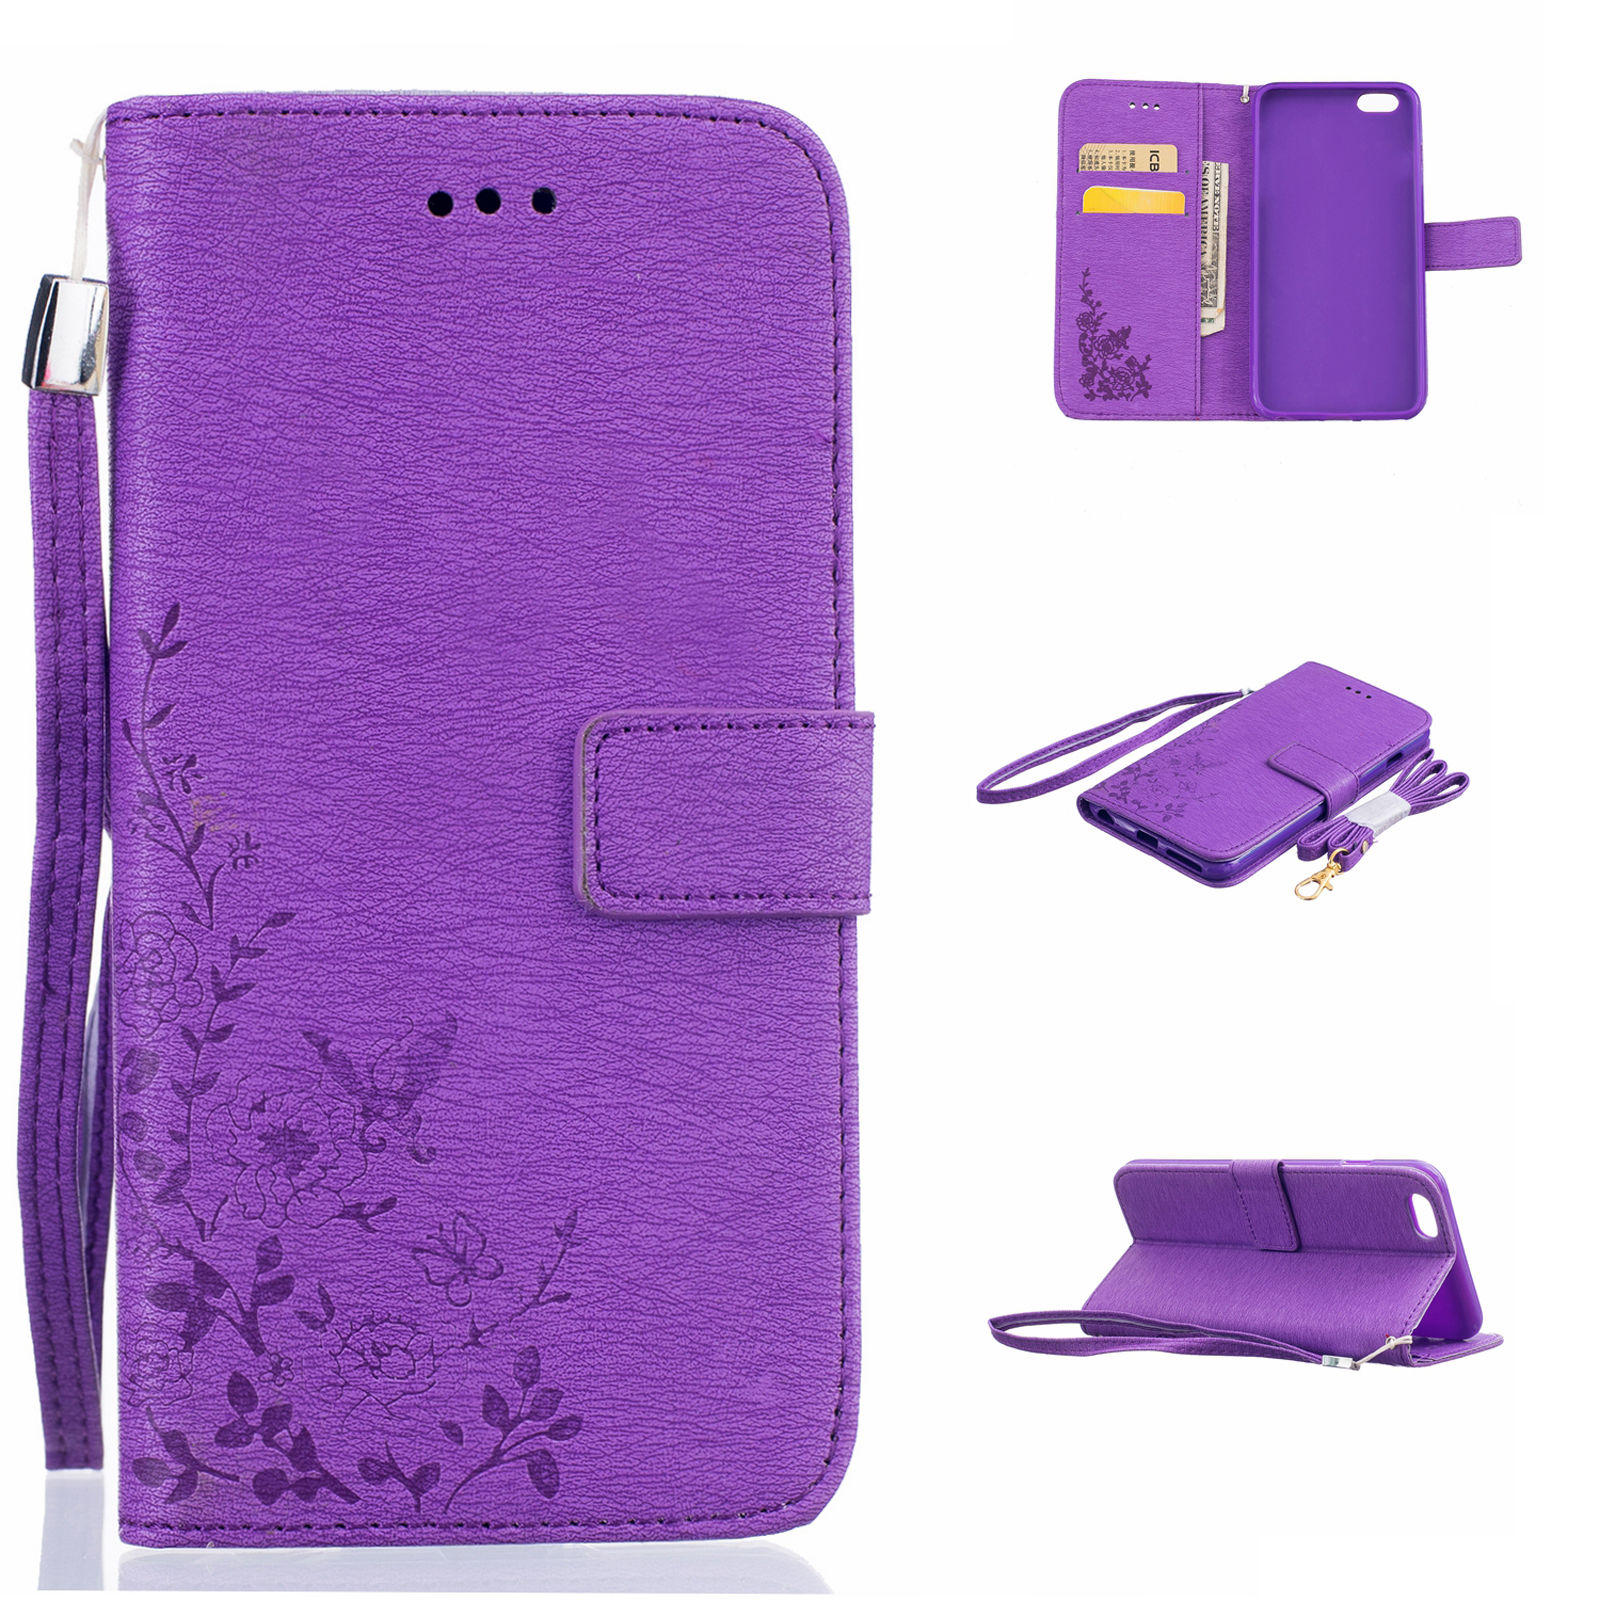 iphone 6 folio case butterfly